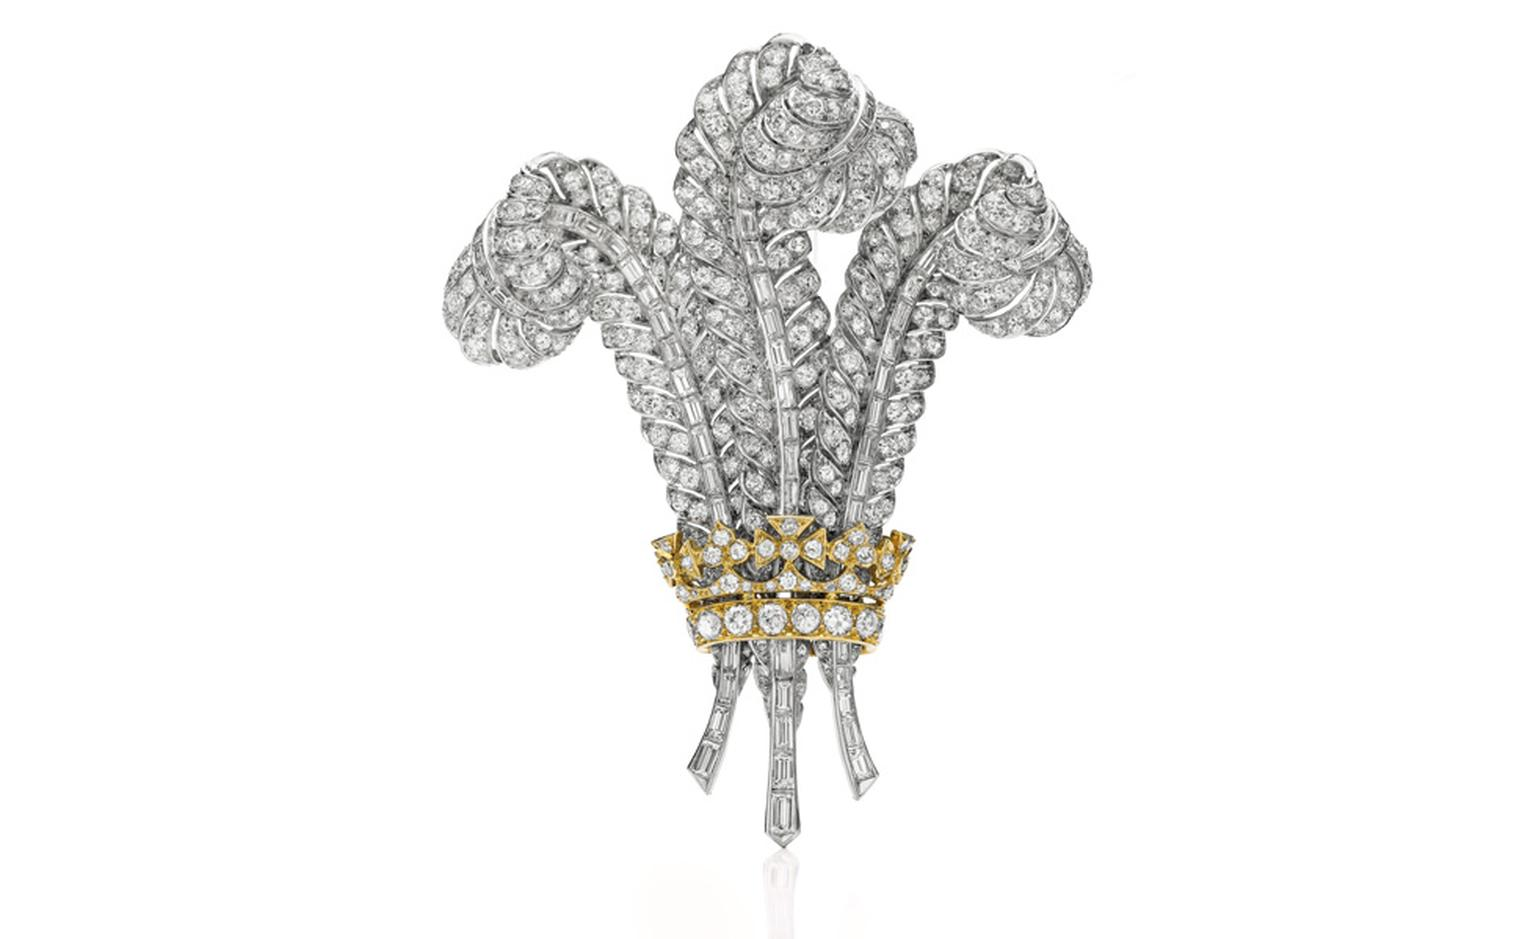 The Prince of Wales Brooch A diamond brooch, circa 1935 From the Collection of the Duchess of Windsor Purchased by Elizabeth Taylor at auction, April 1987 Estimate: $400,000 – 600,000